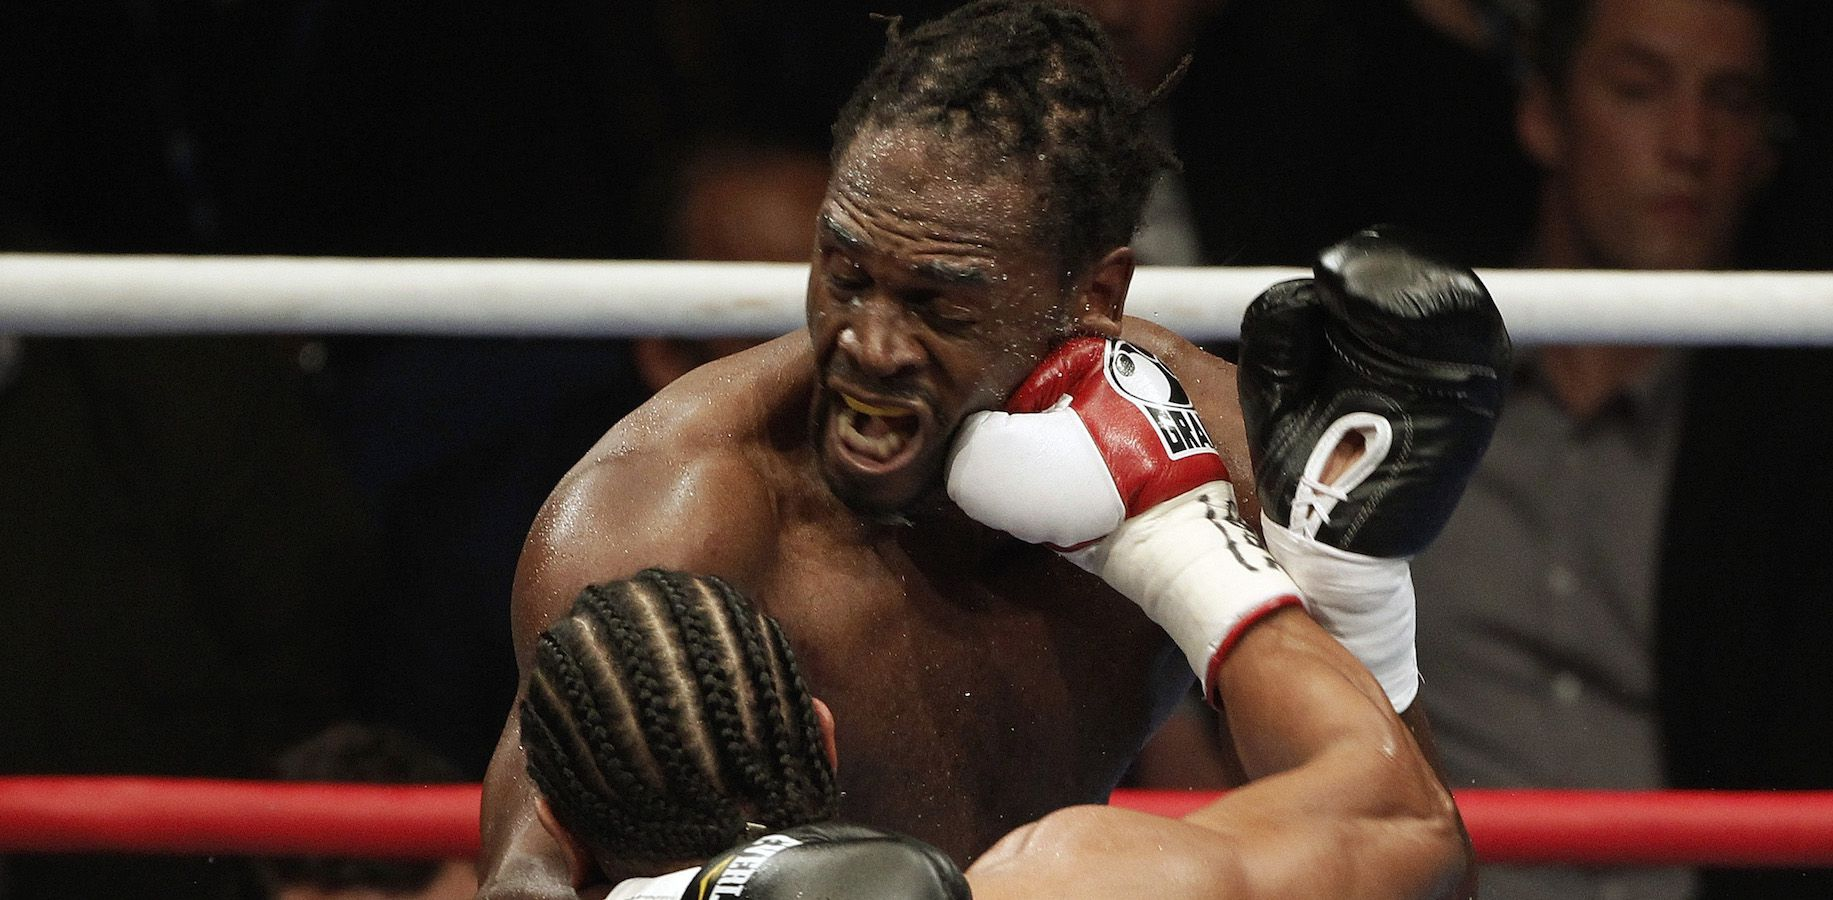 British boxer David Haye (L) lands a punch on compatriot Audley Harrison during their WBA world heavyweight title fight at the MEN Arena in Manchester, northern England, November 13, 2010.   REUTERS/Phil Noble  (BRITAIN - Tags: SPORT BOXING IMAGES OF THE DAY) - RTXULHF